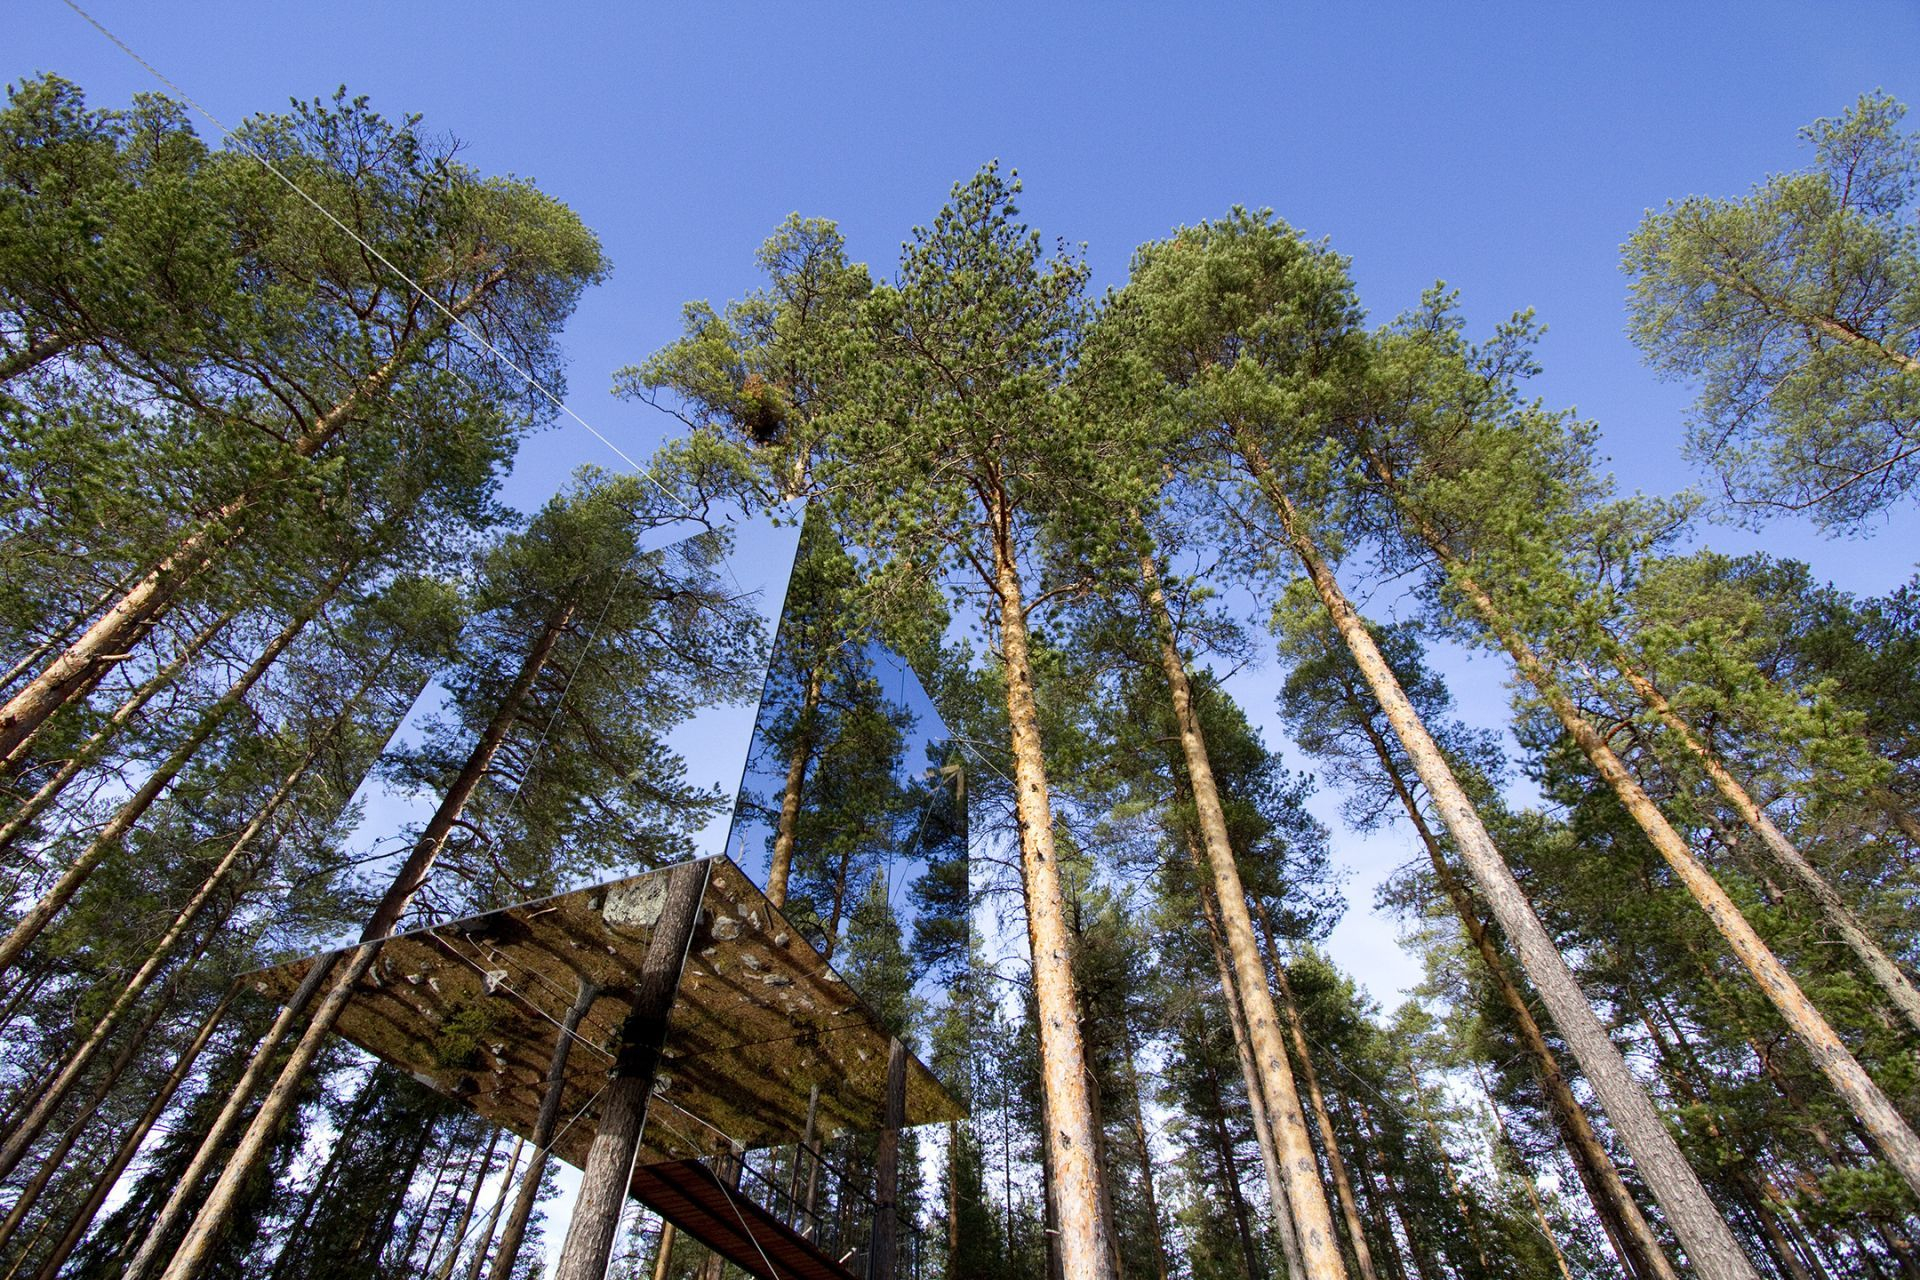 Mirrorcube Treehotel, Sweden is a lightweight aluminium structure ...